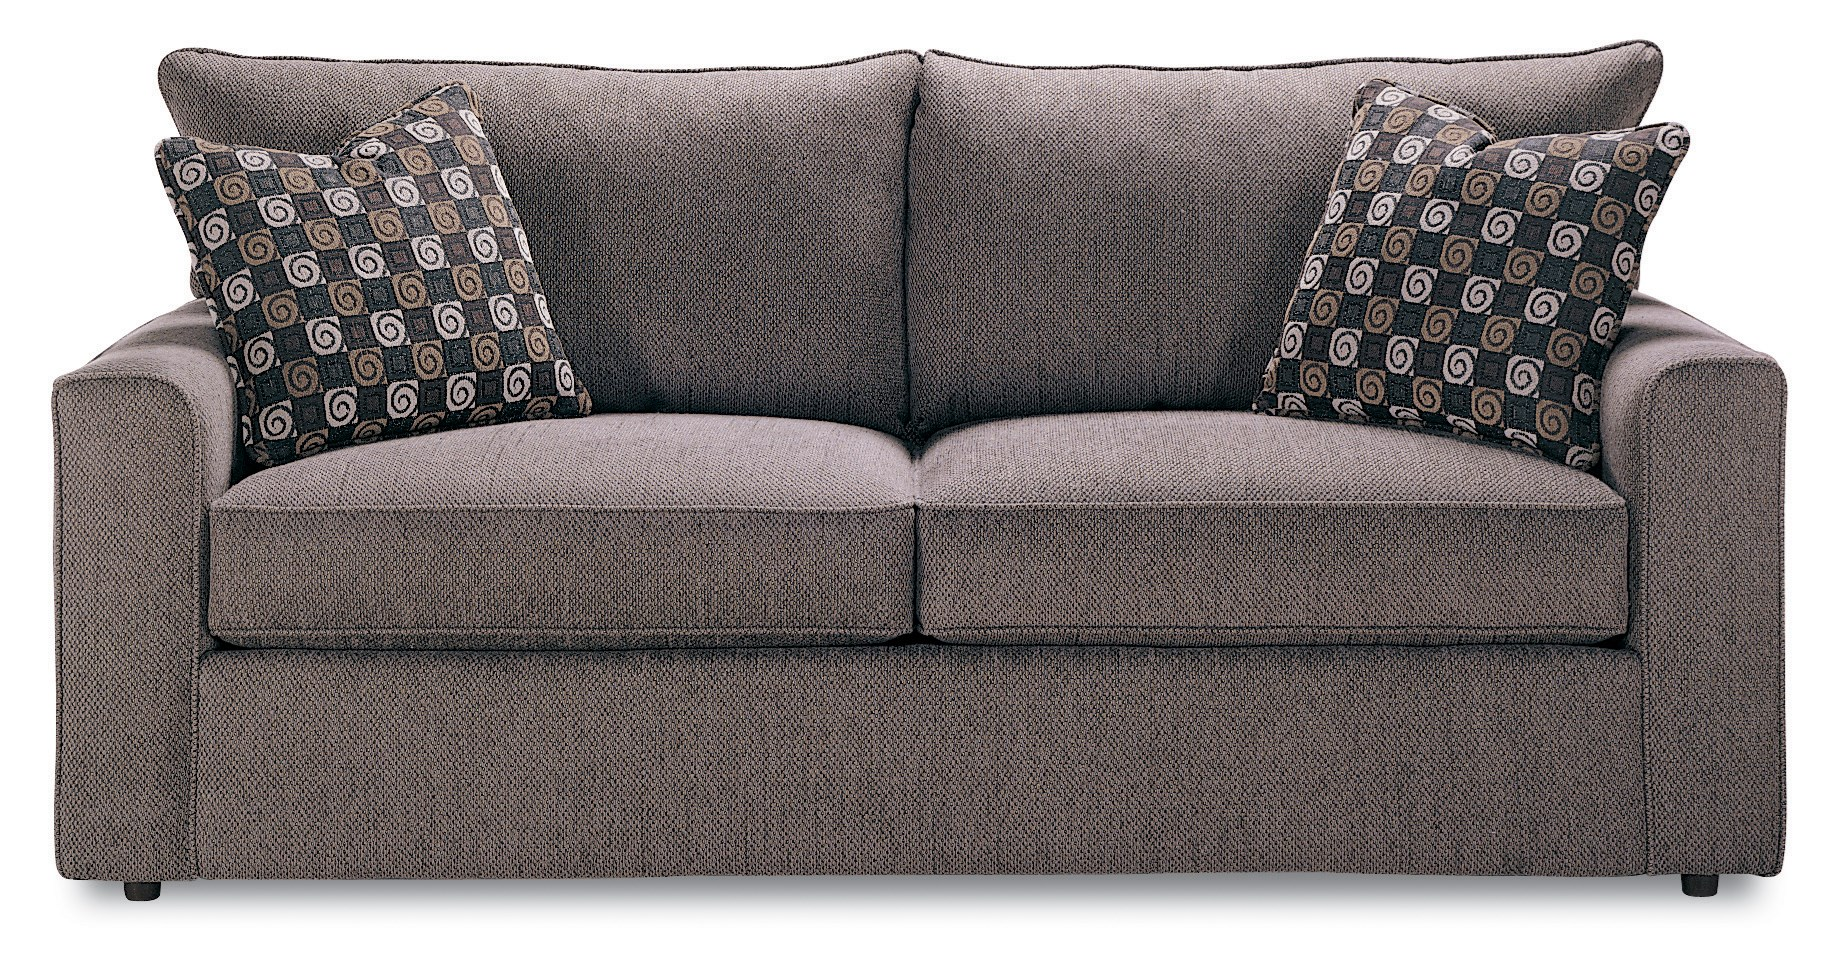 sleeper sofa bad credit rose wood set designs rowe pesci a309q 000 contemporary style queen size